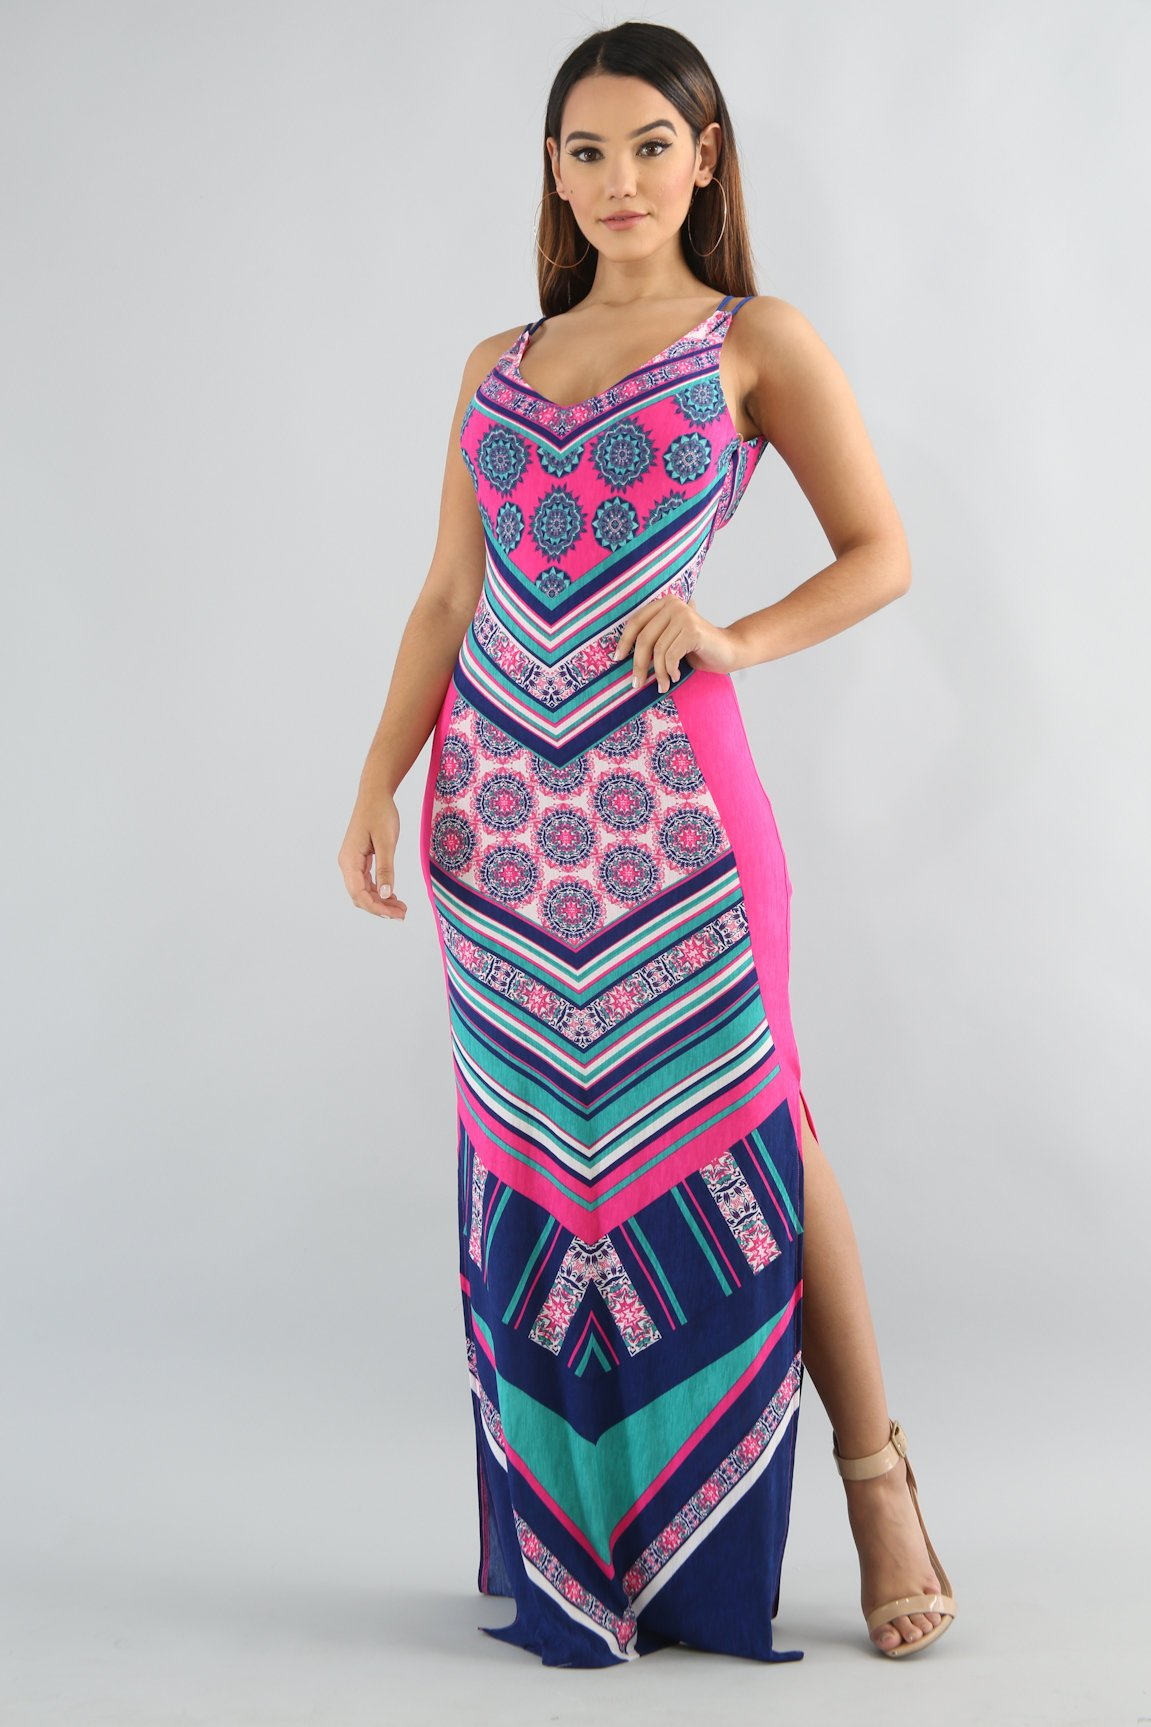 Chevron Burst Color Dress